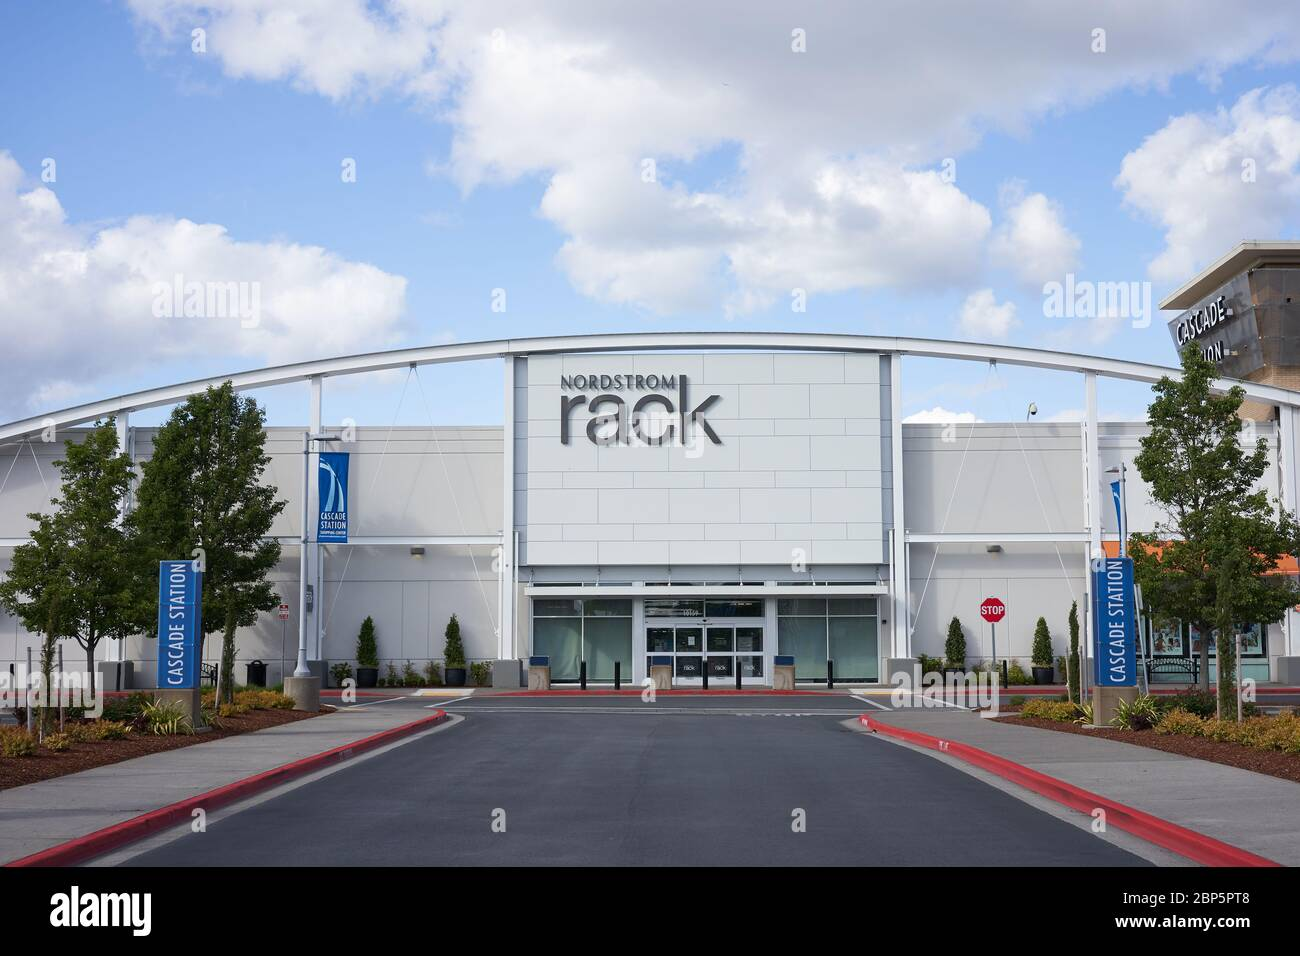 https www alamy com portland or usa may 6 2020 closed nordstrom rack store in northeast portland oregon during the coronavirus pandemic image357857480 html